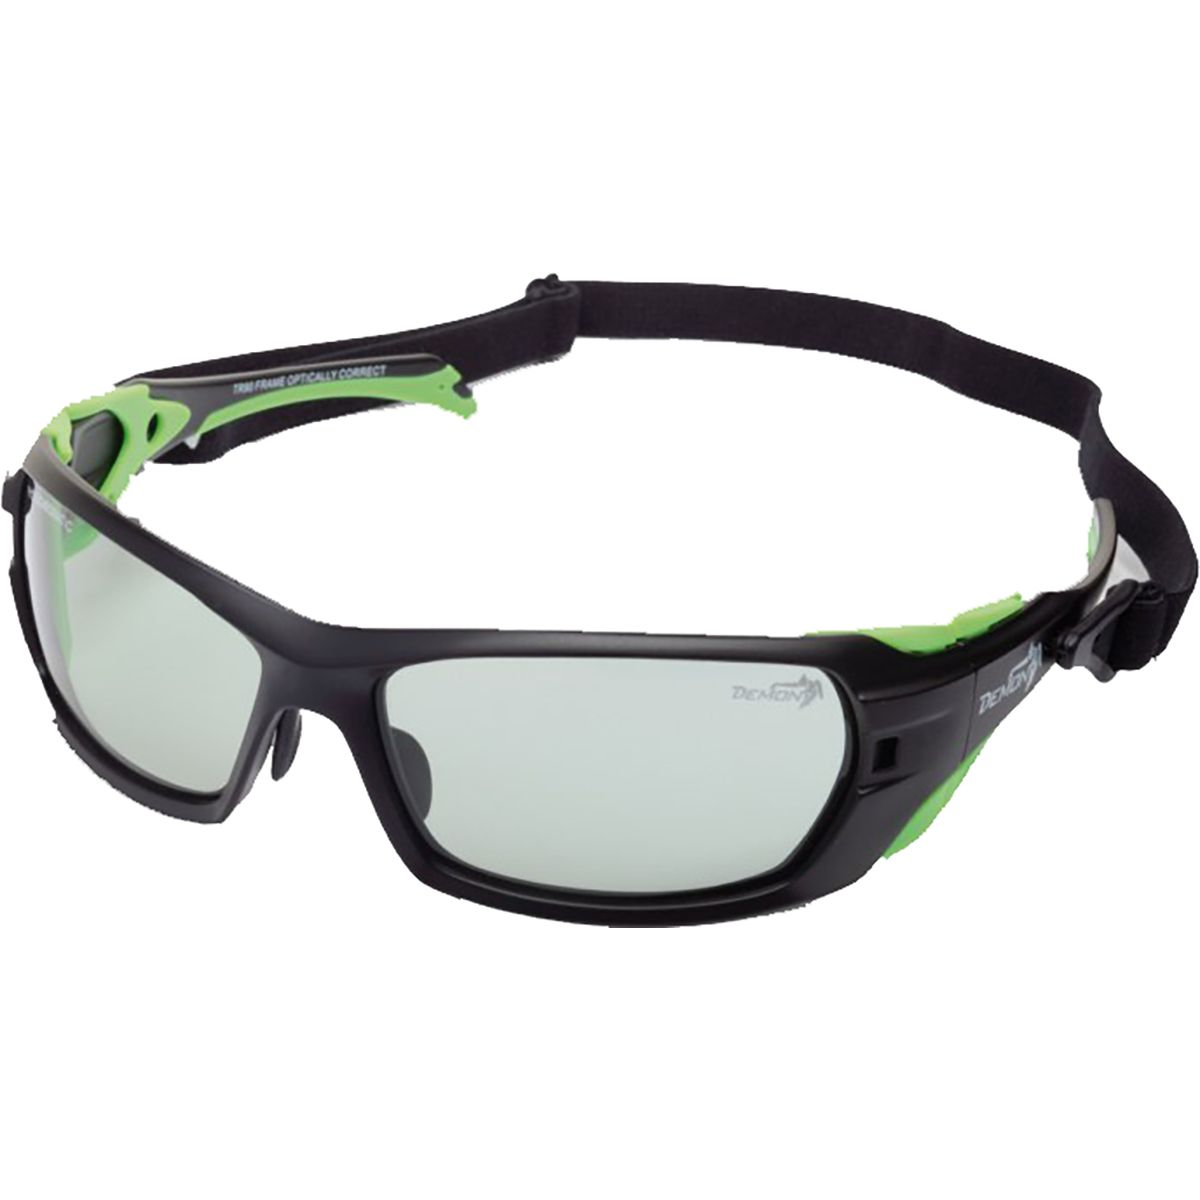 Demon Masterpiece Photochromic Cat 2-4 Sonnenbrille (matt blk green/photochr. smoke) MASTERPIECEBK/G